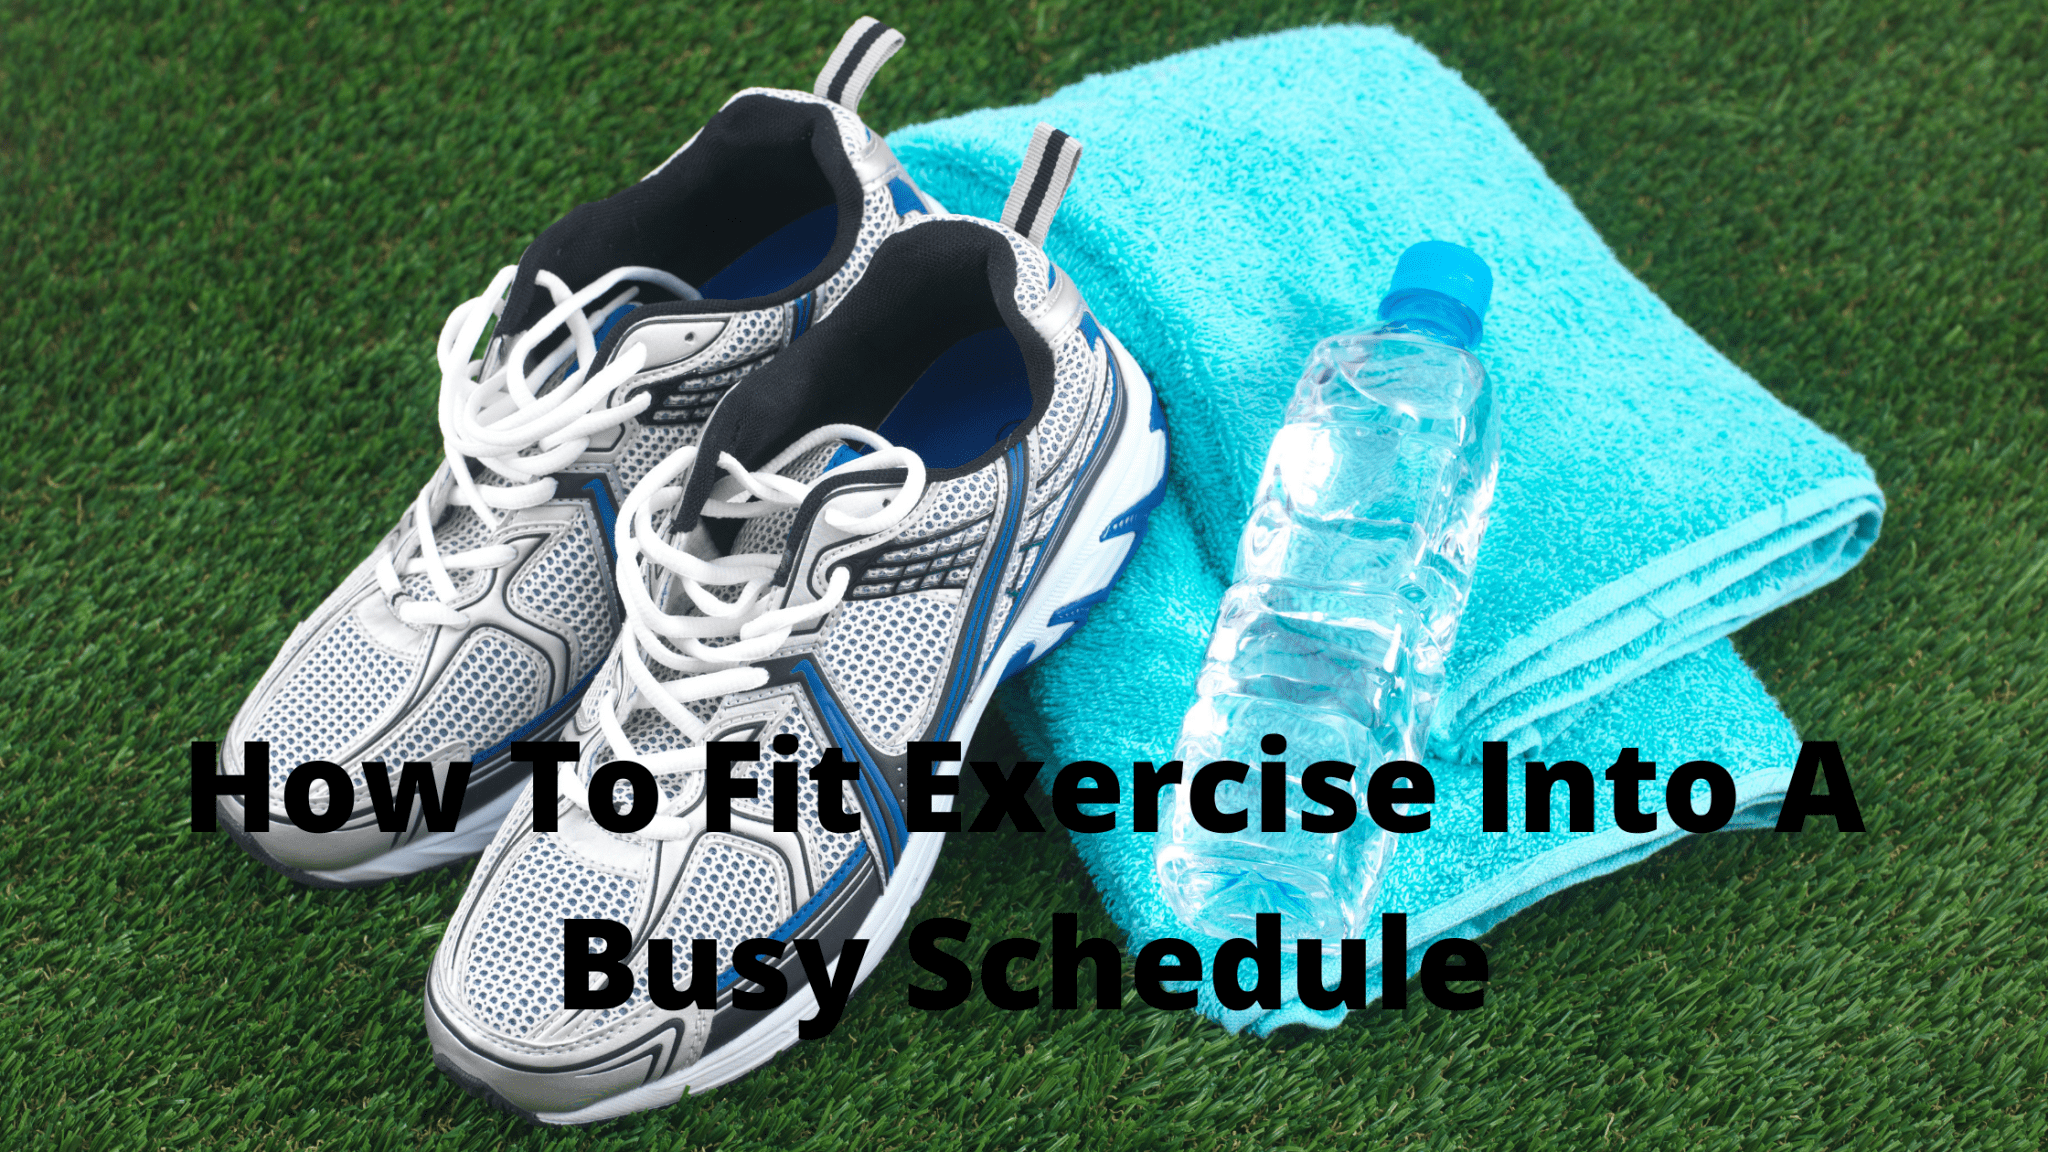 How To Fit Exercise Into A Busy Schedule